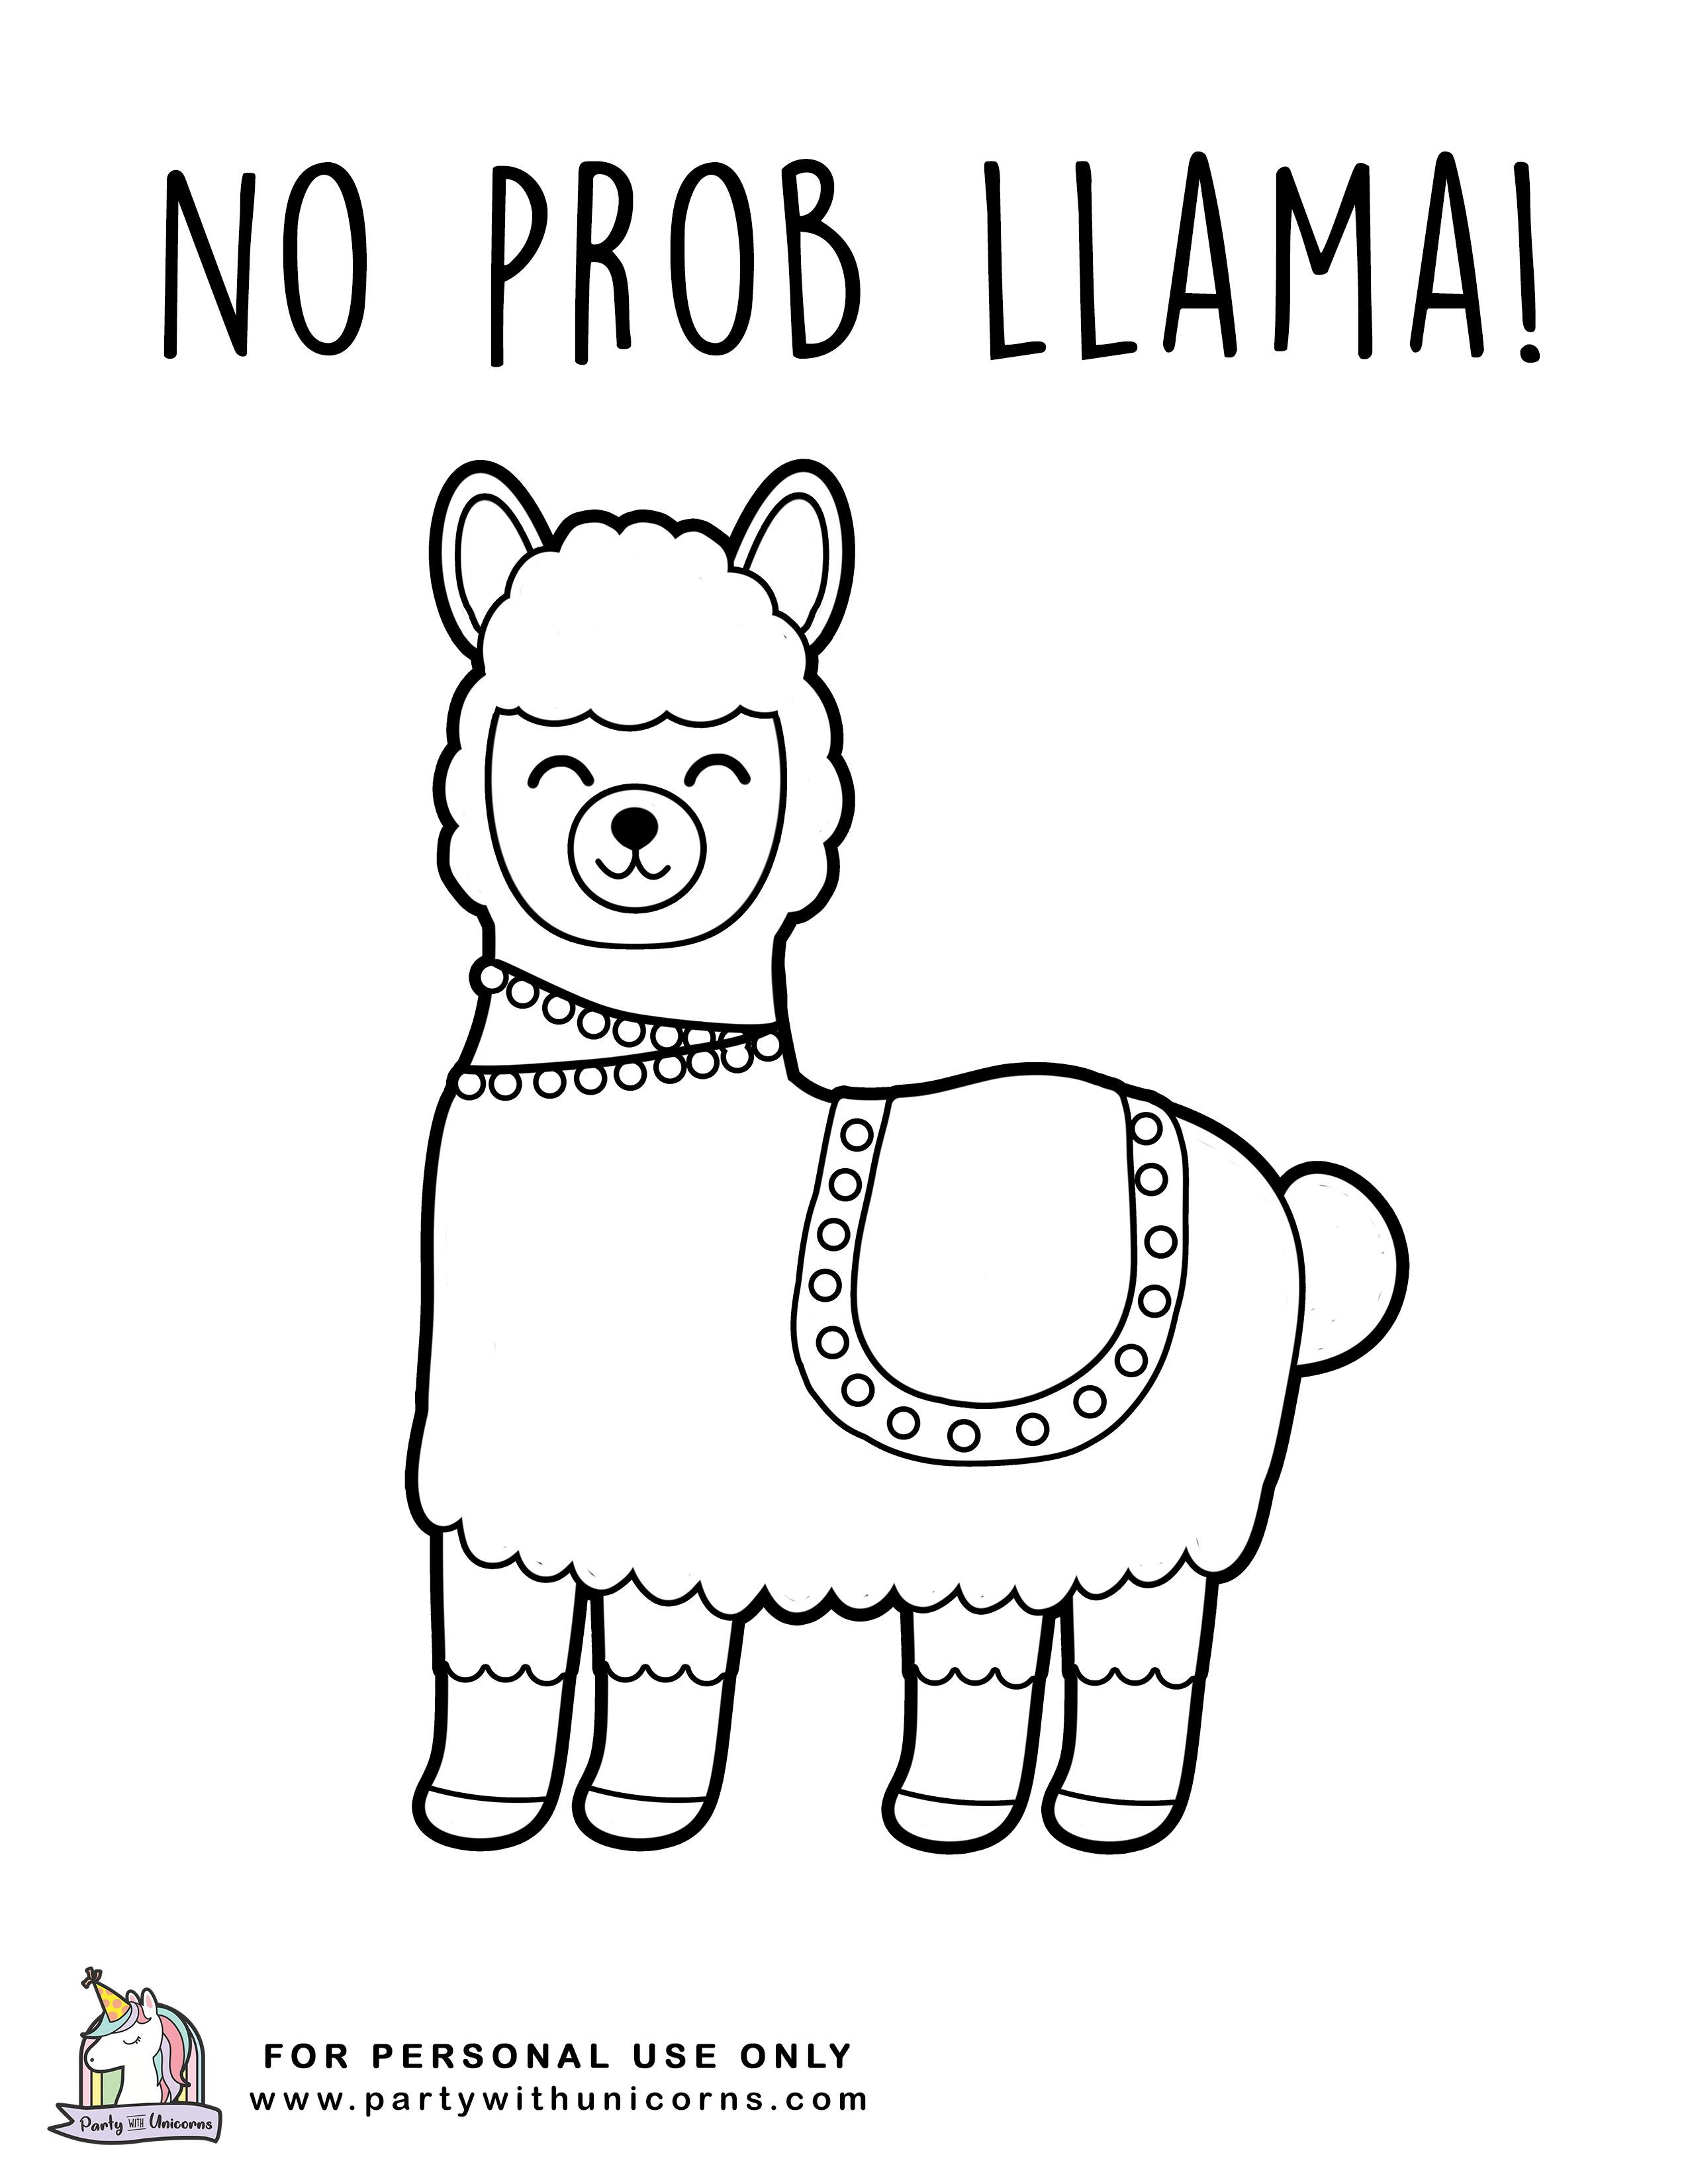 Llama Coloring Pages Free Download In 2020 Coloring Pages For Kids Coloring Pages Coloring Books